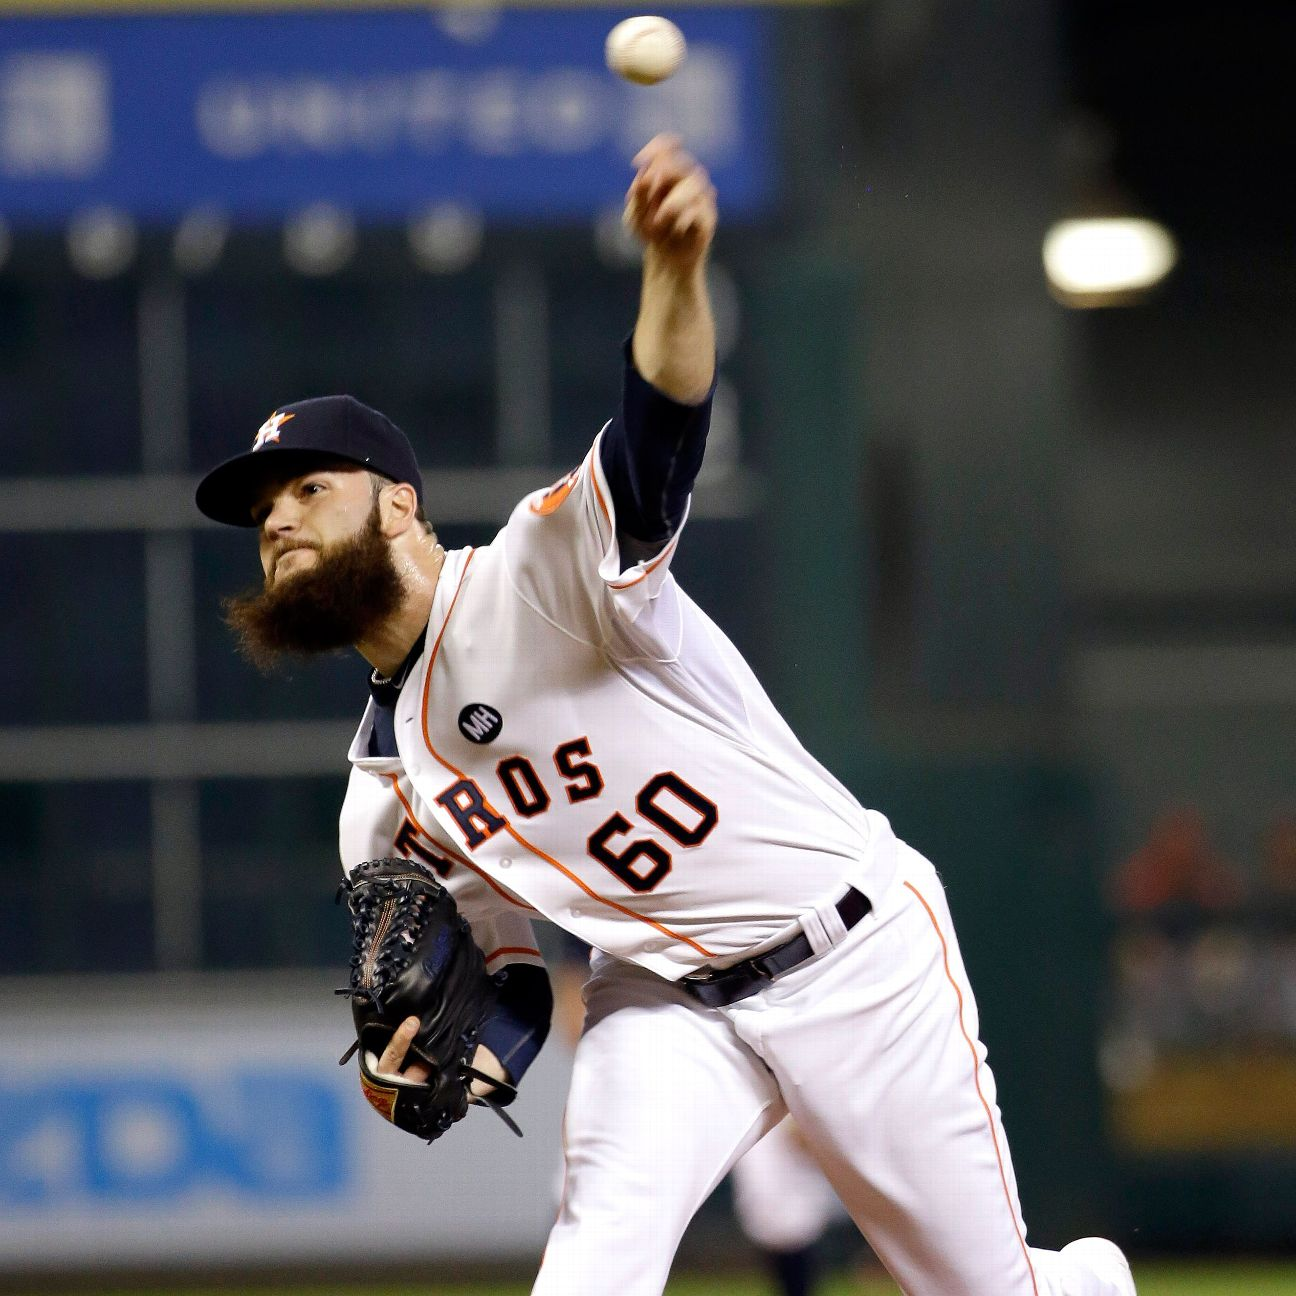 Monday's Top 5: Dallas Keuchel Remains Undefeated At Home